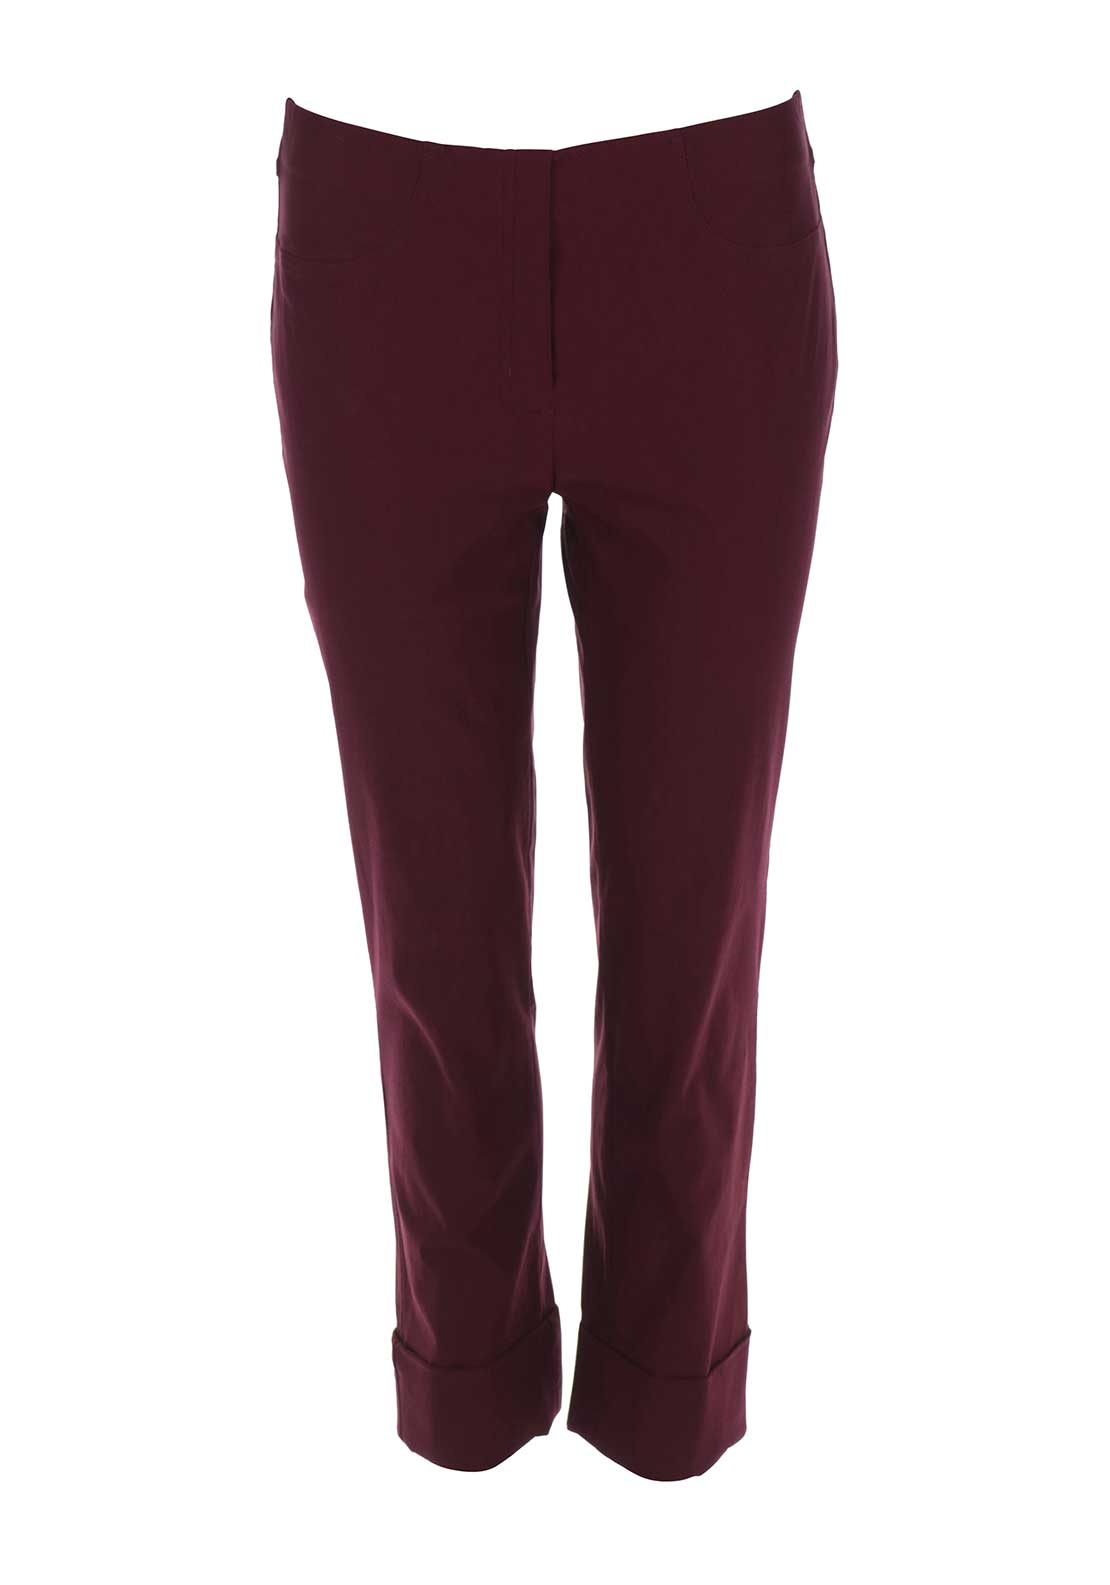 Robell Bella 09 Turn Up Cropped Trousers, Wine